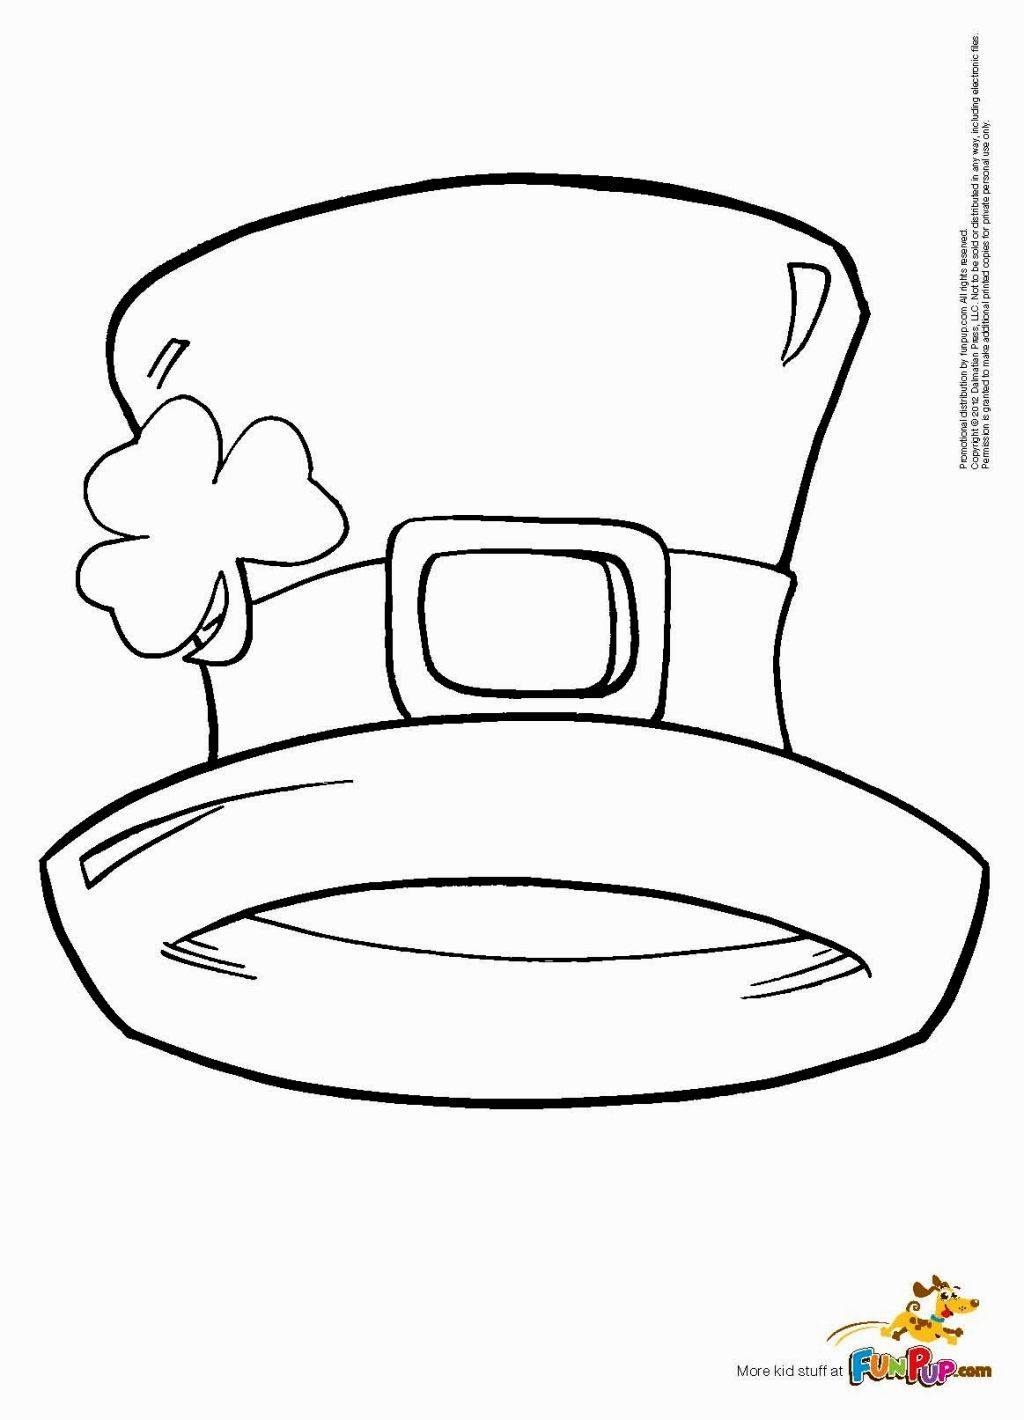 Coloring Pages For March | Coloring Pages | Coloring Pages